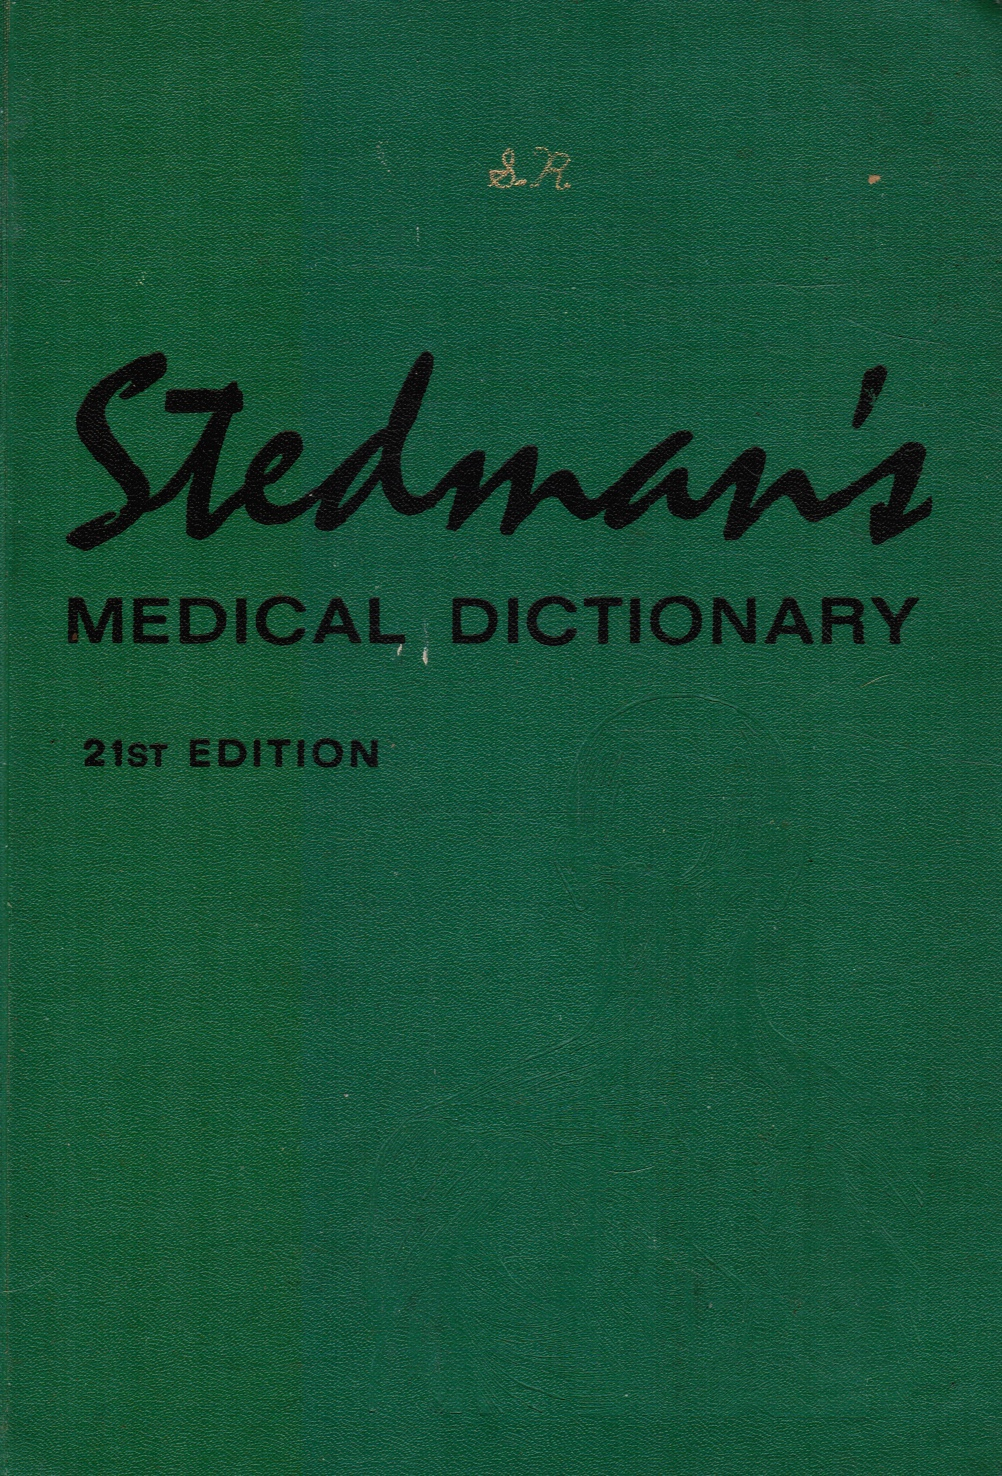 Image for Stedman's Medical Dictionary : a Vocabulary of Medicine and its Allied Sciences, with Pronunciations and Derivations